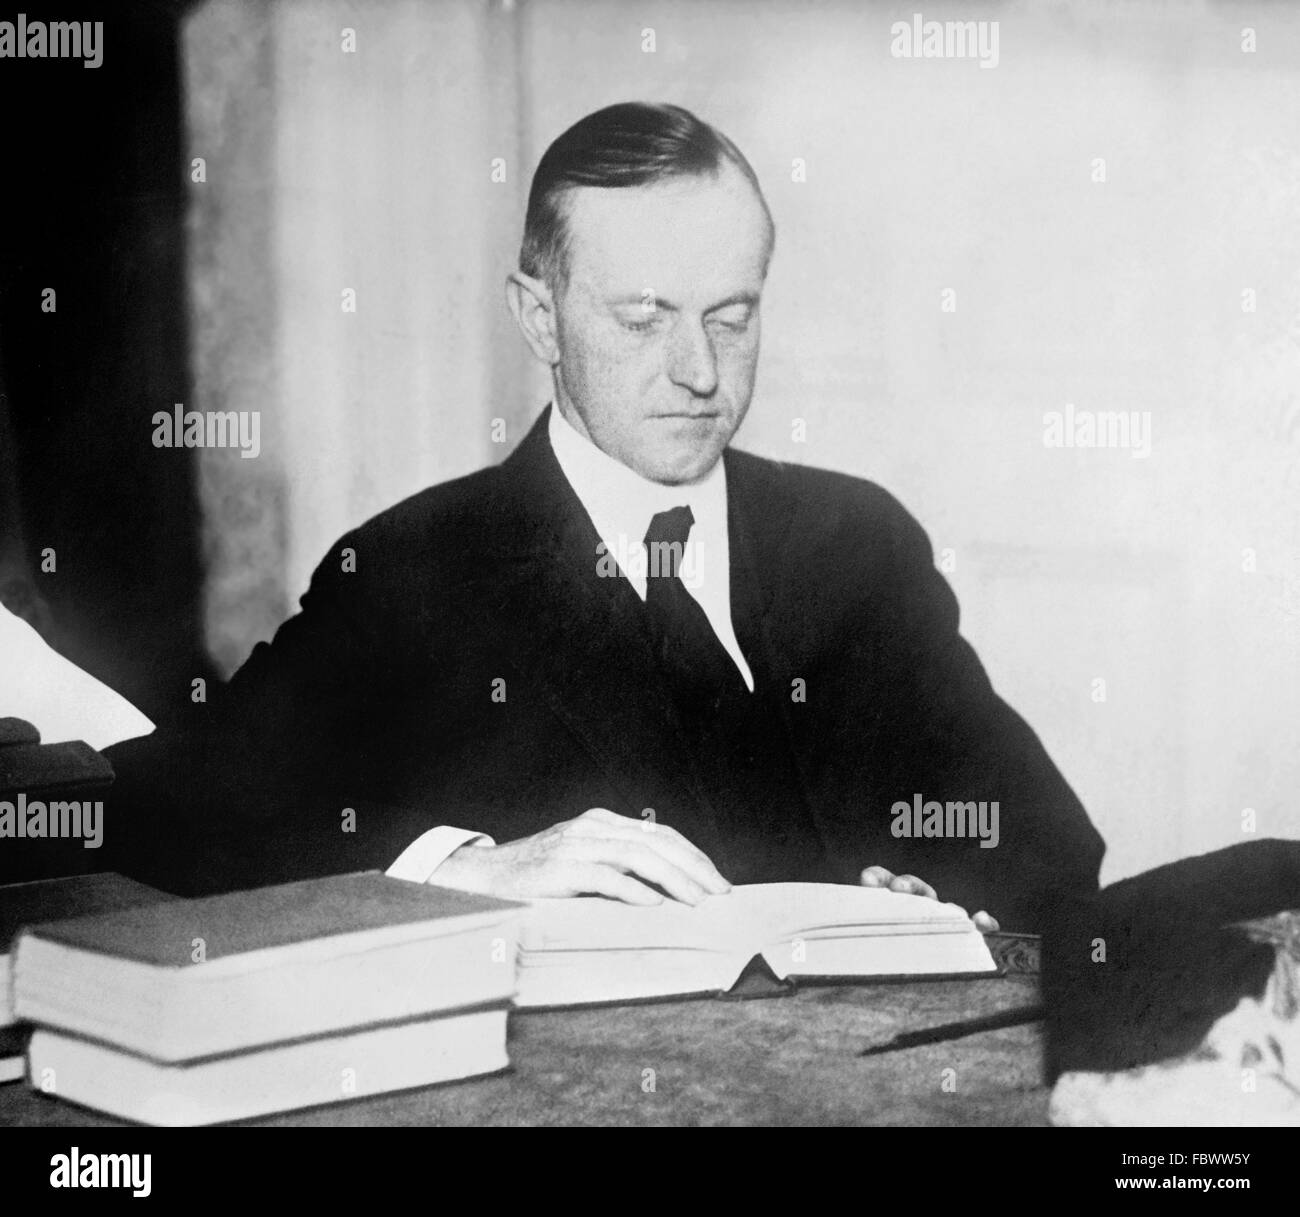 Calvin Coolidge, portrait of the 30th President of the USA - Stock Image